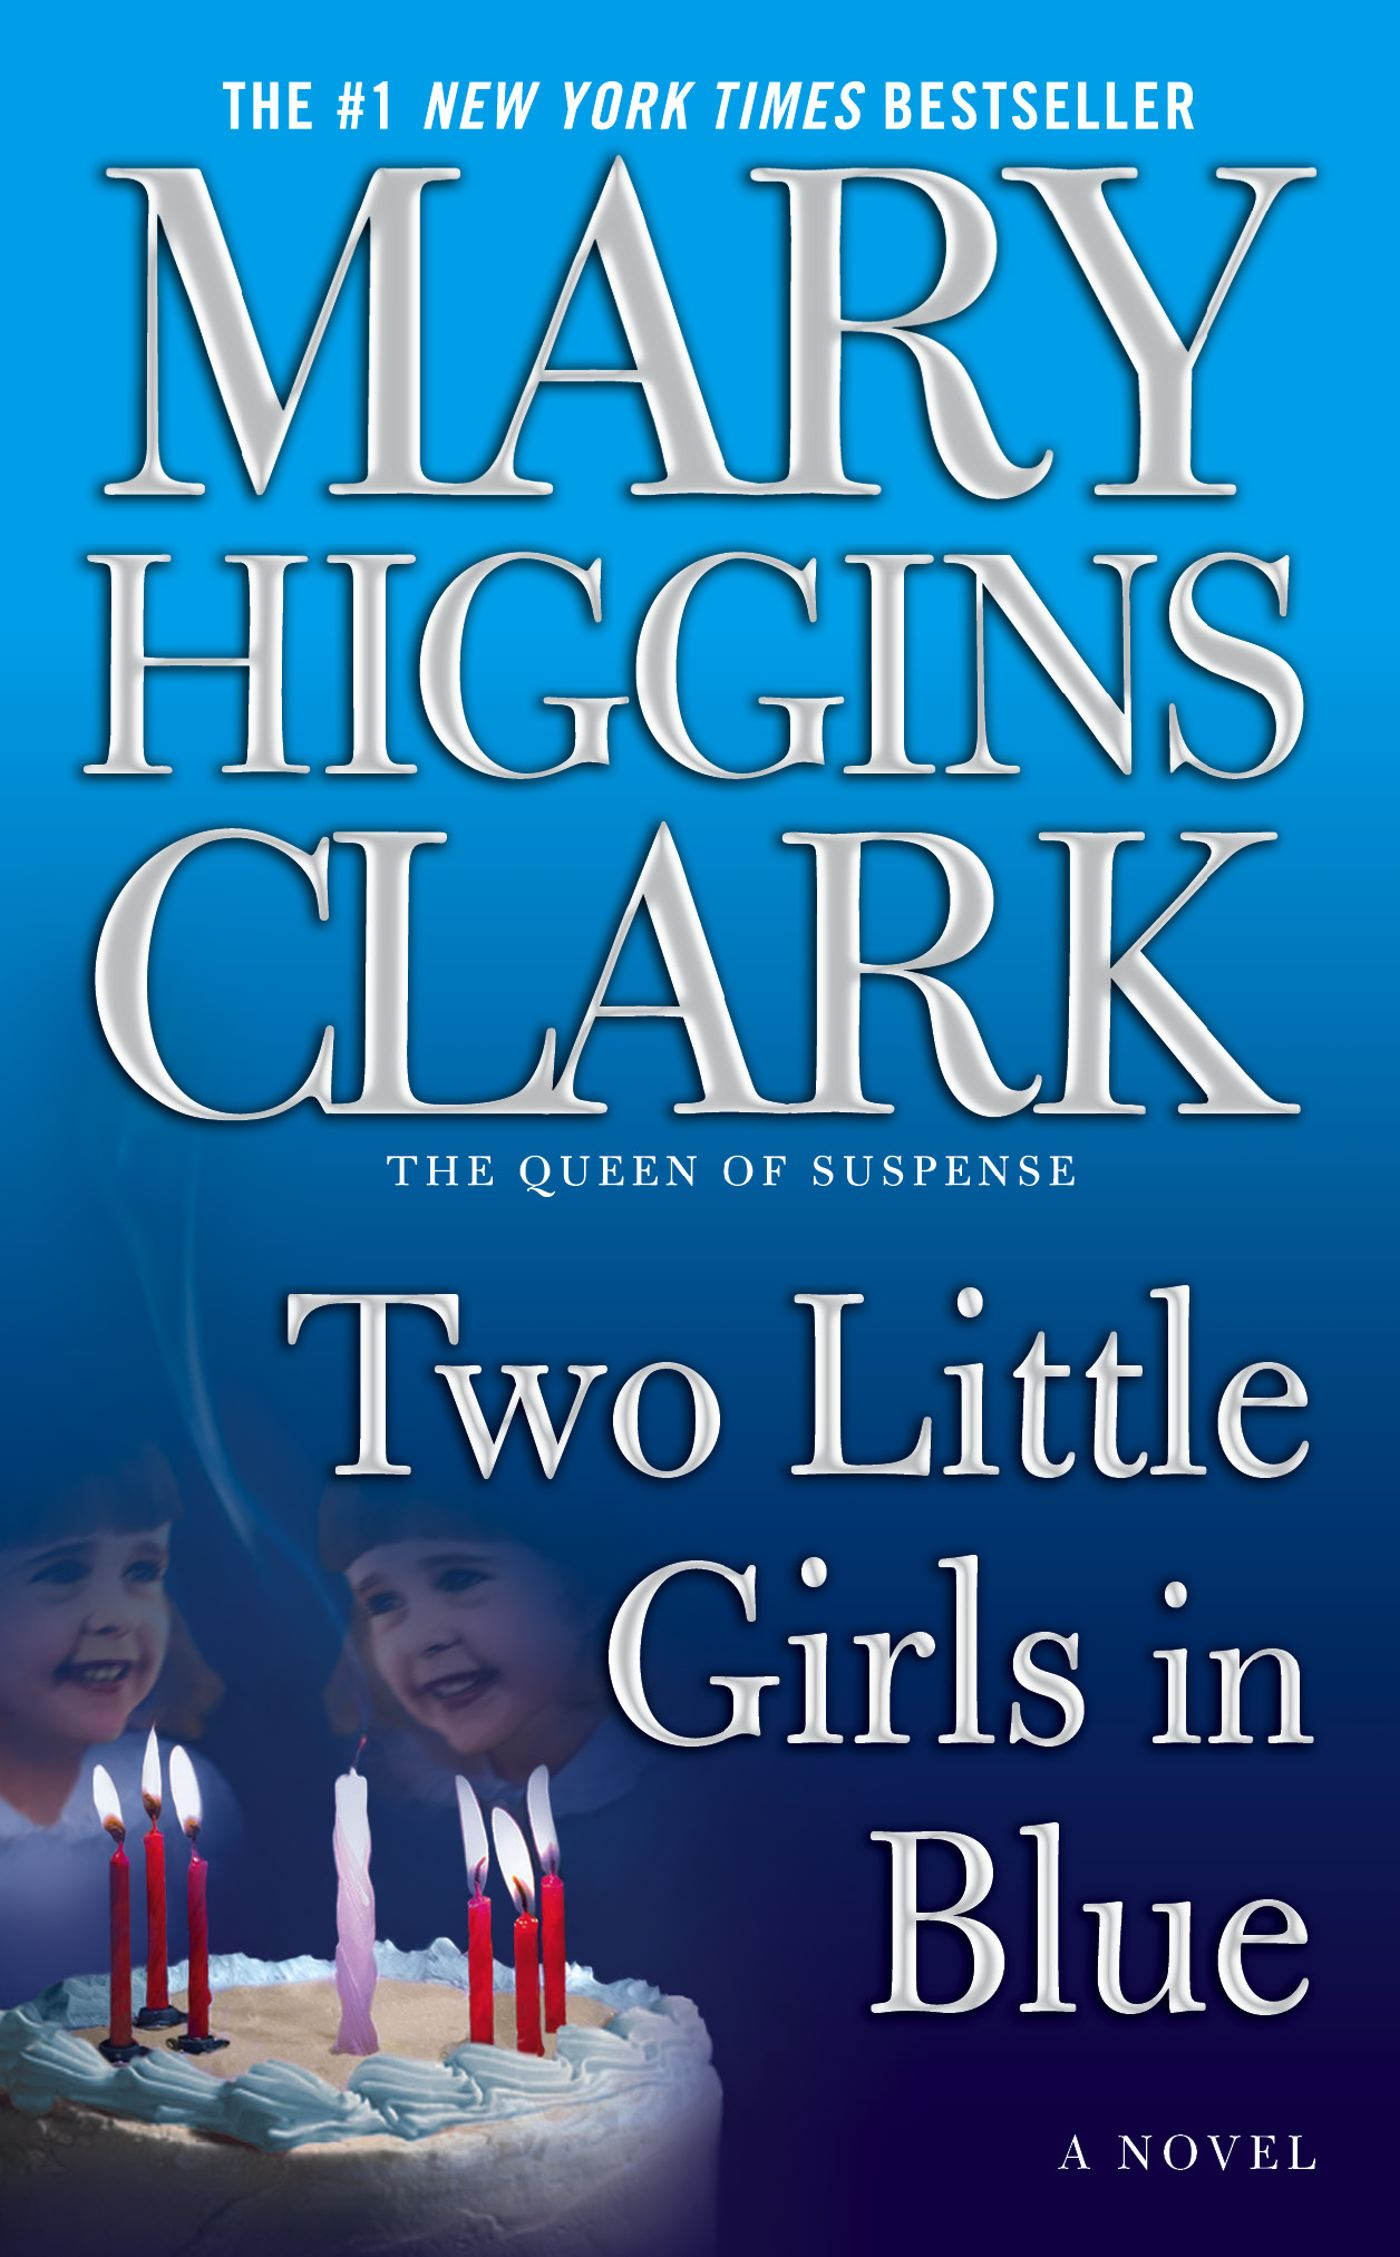 Two little girls in blue 9780743497299 hr